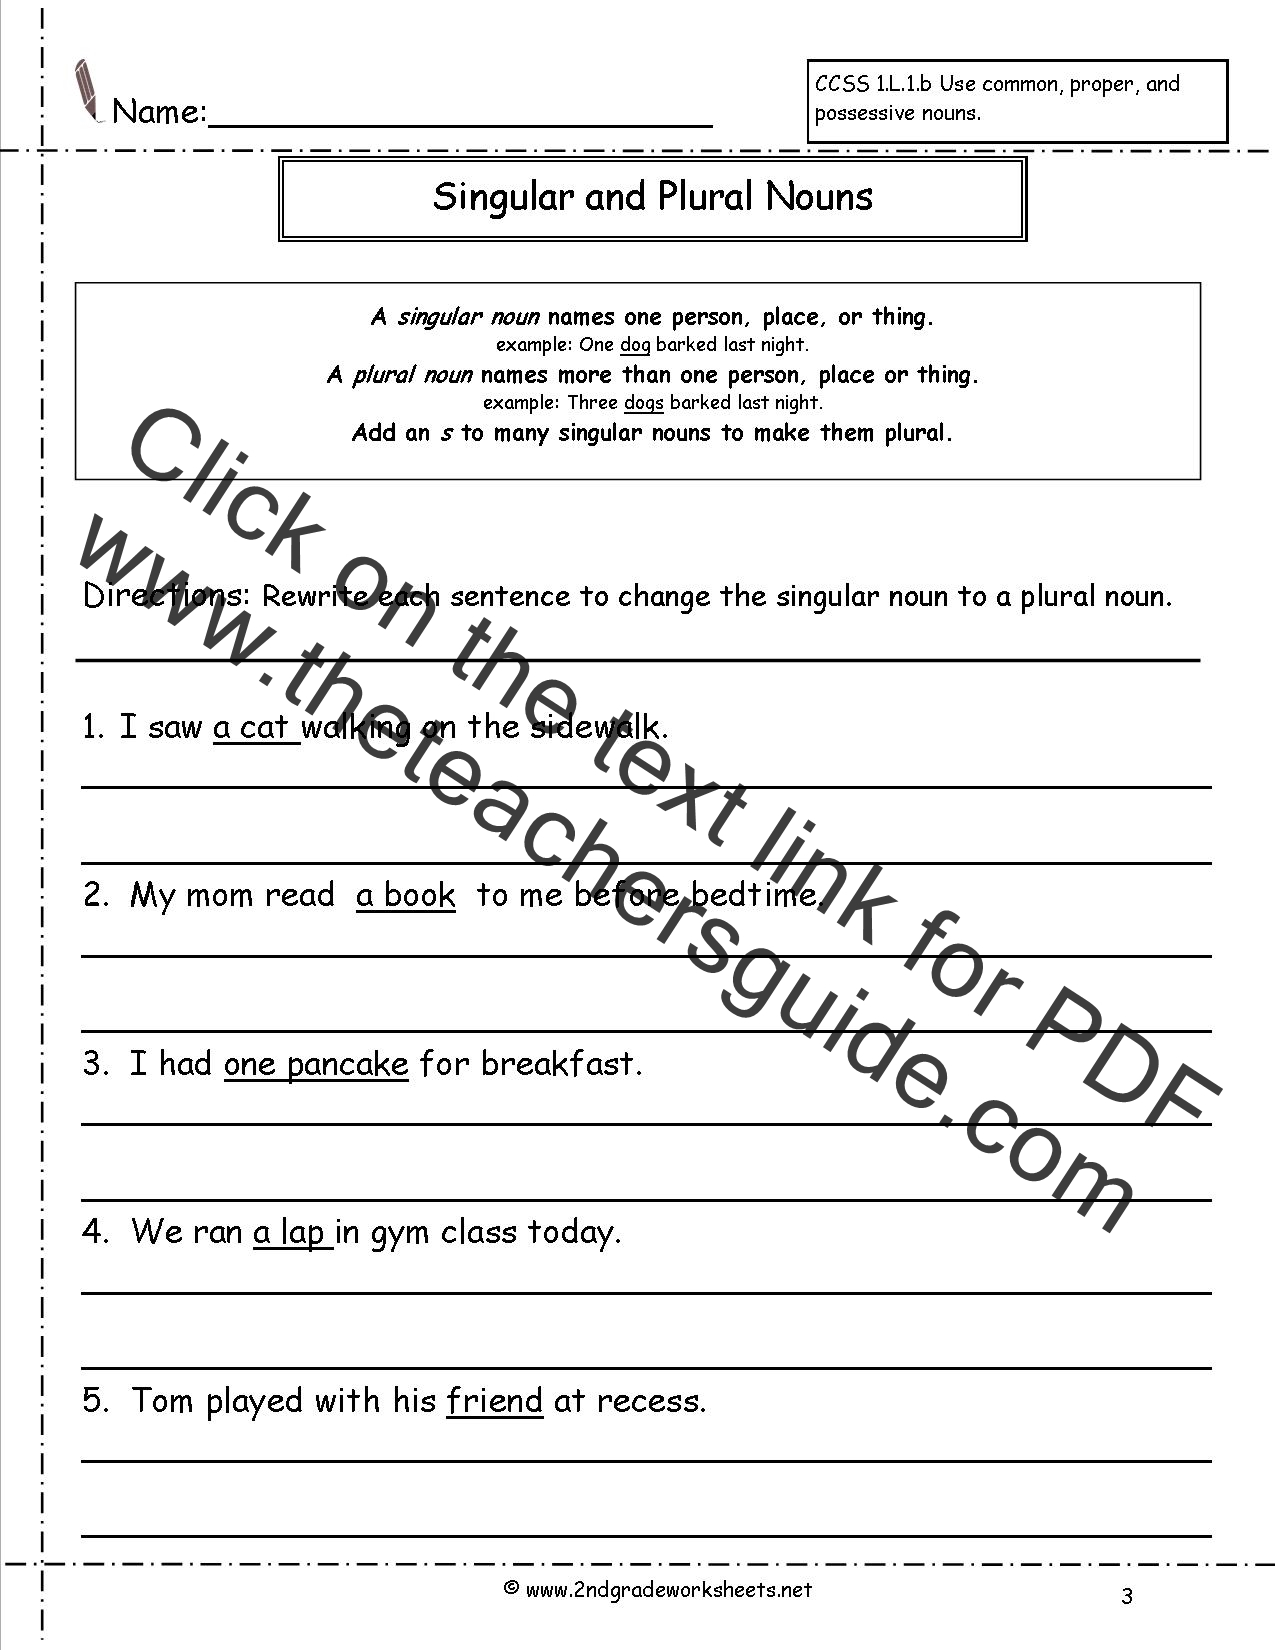 Singular And Plural Nouns Activities For 1st Grade